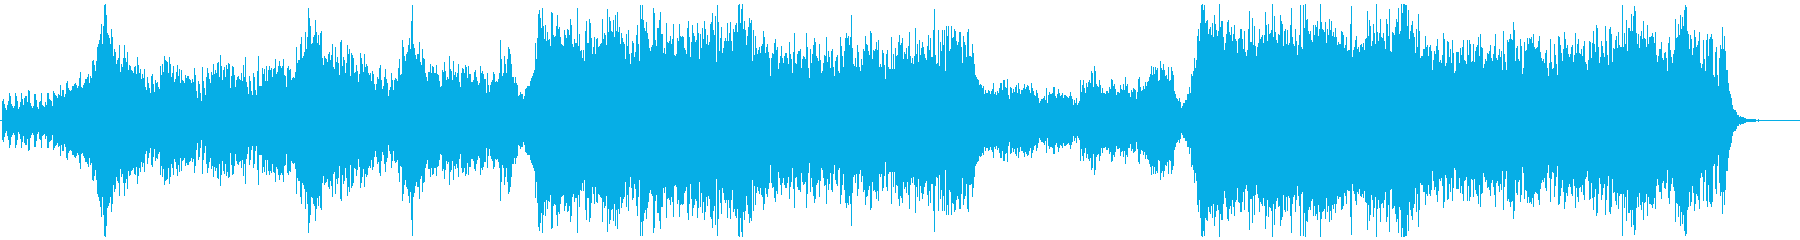 PIRATES ADVENTURE's reproduced waveform